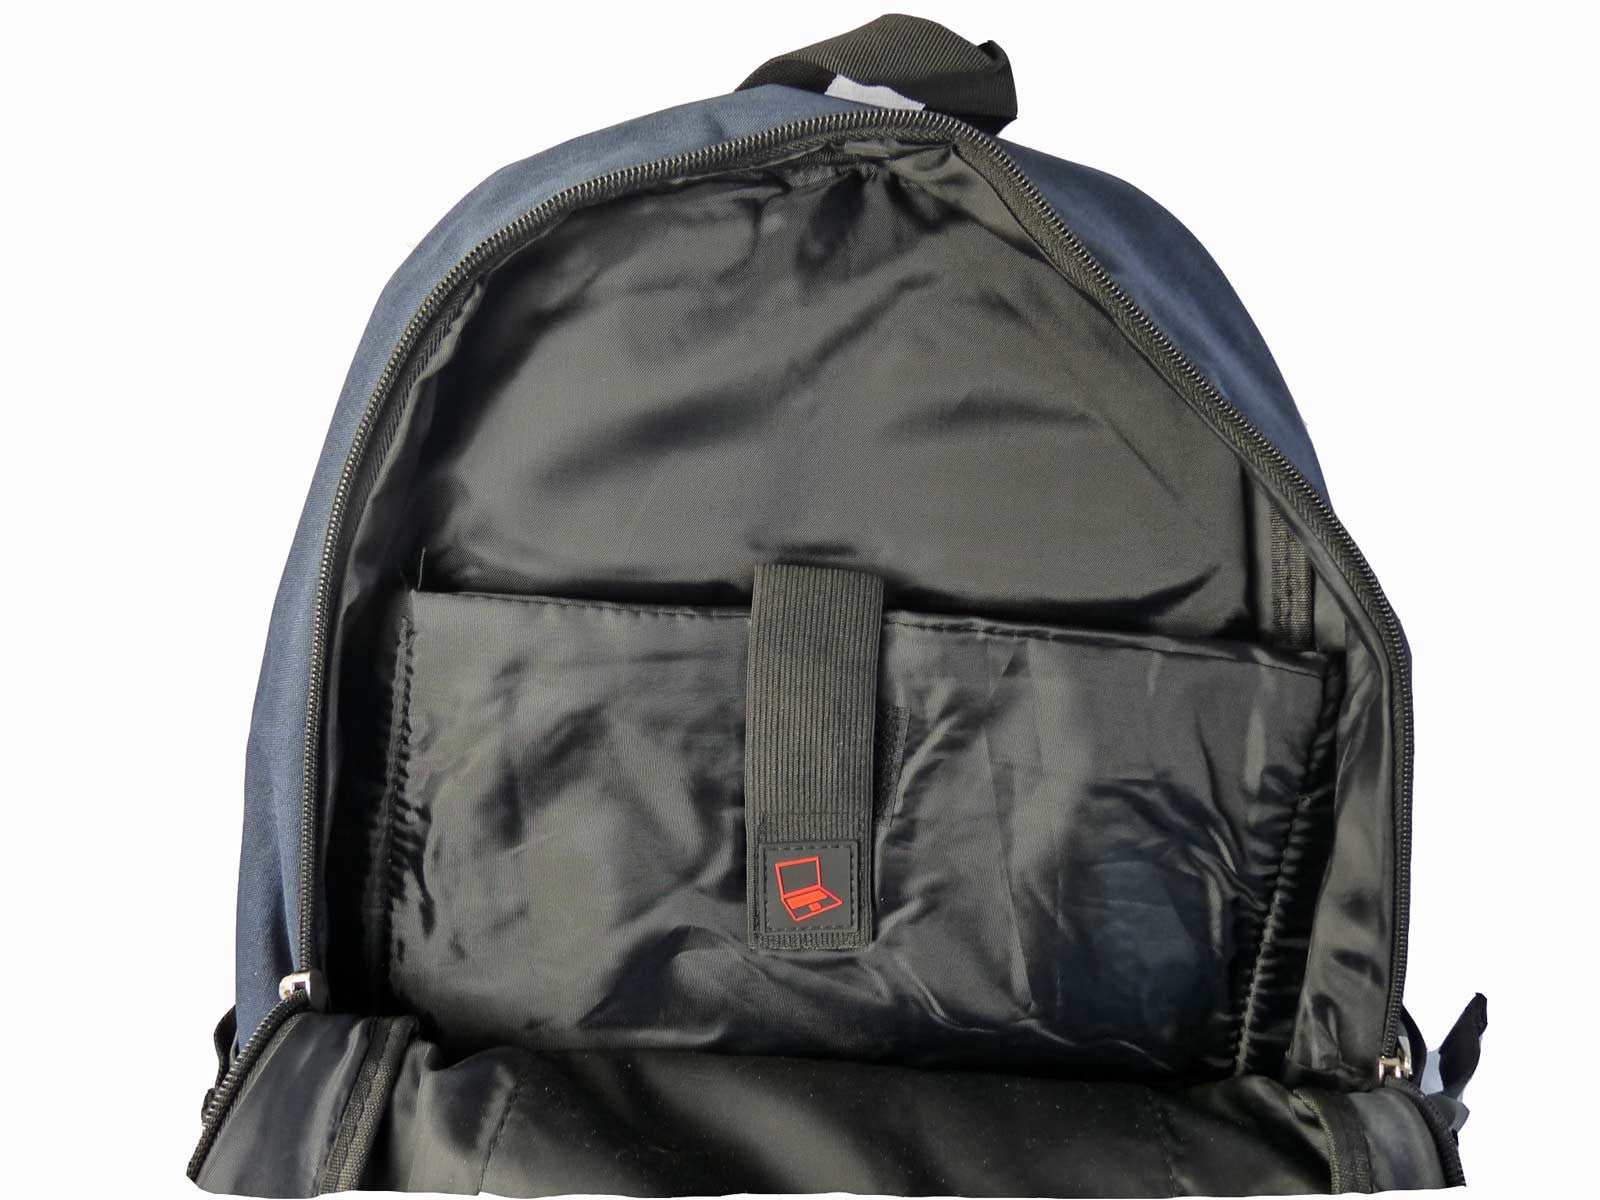 Laptop Macbook Backpack Rucksack Bag RL45N Sleeve View